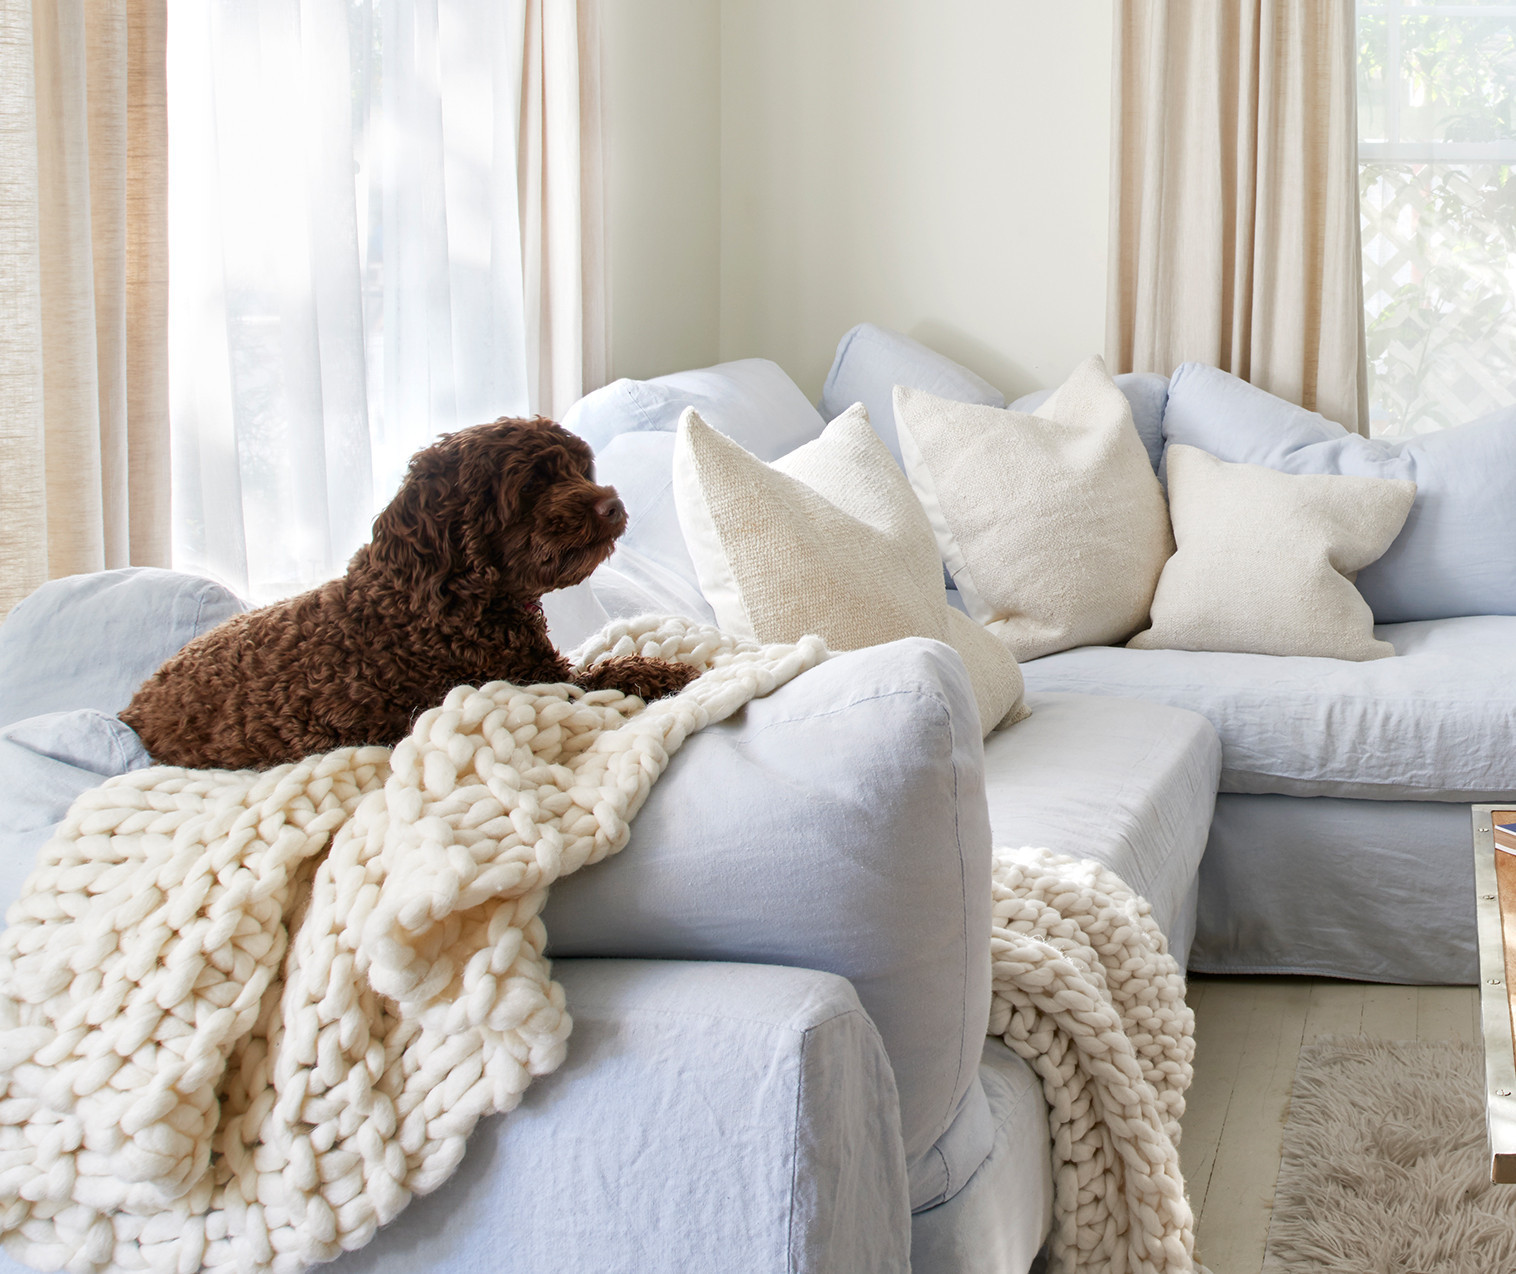 This Country Chic Living Room Is Everything Rachel: Rachel Ashwell Shabby Chic Couture Living Room Décor